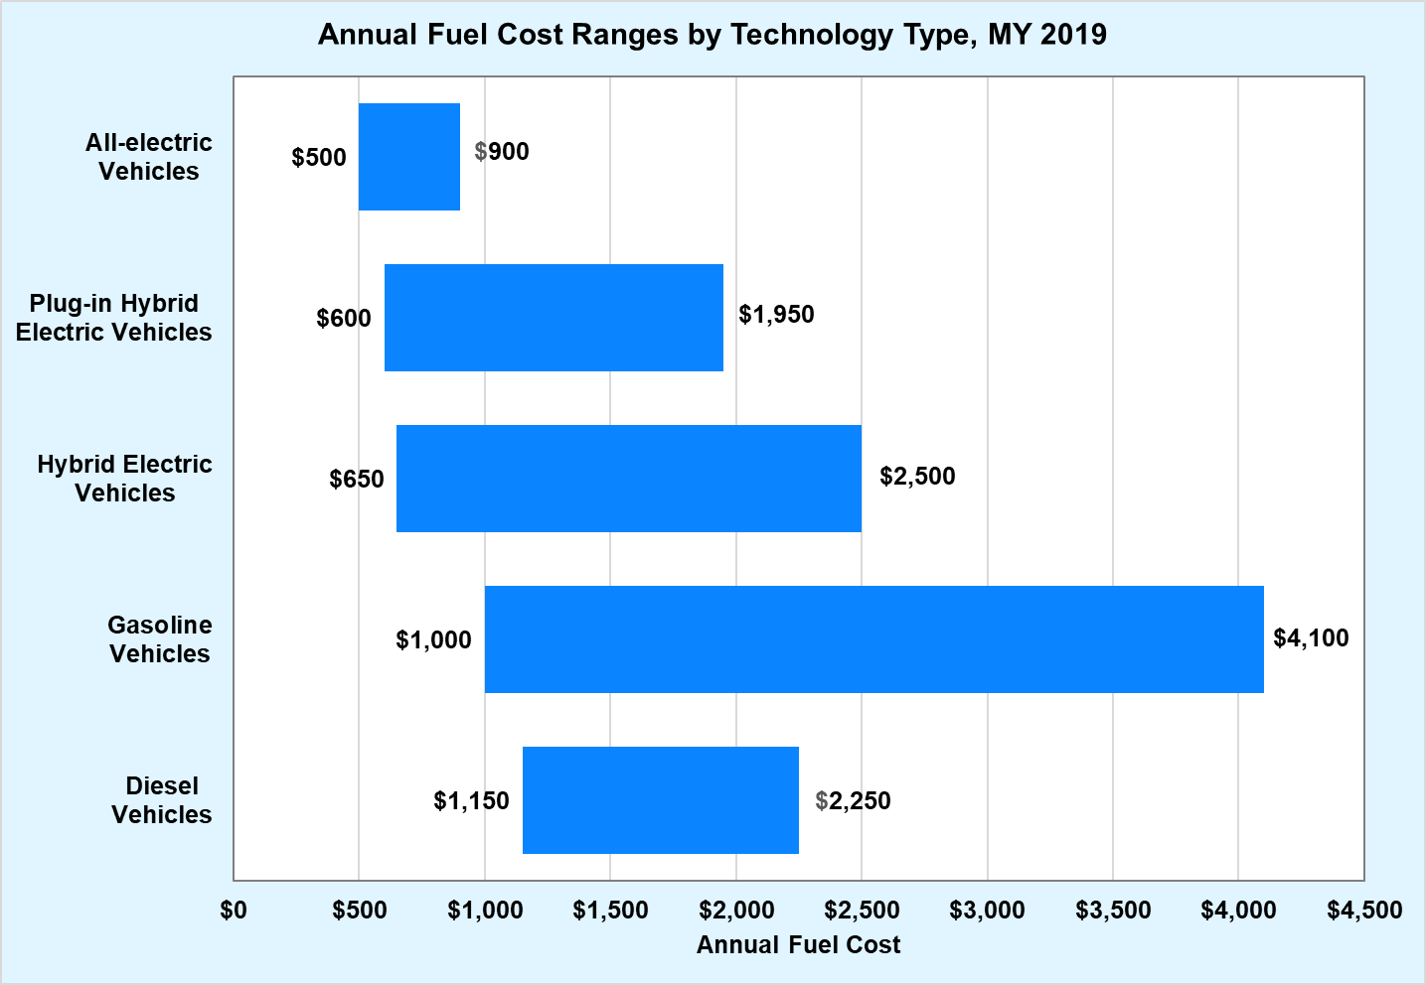 Annual Fuel Cost Ranges by Technology Type, MY 2019